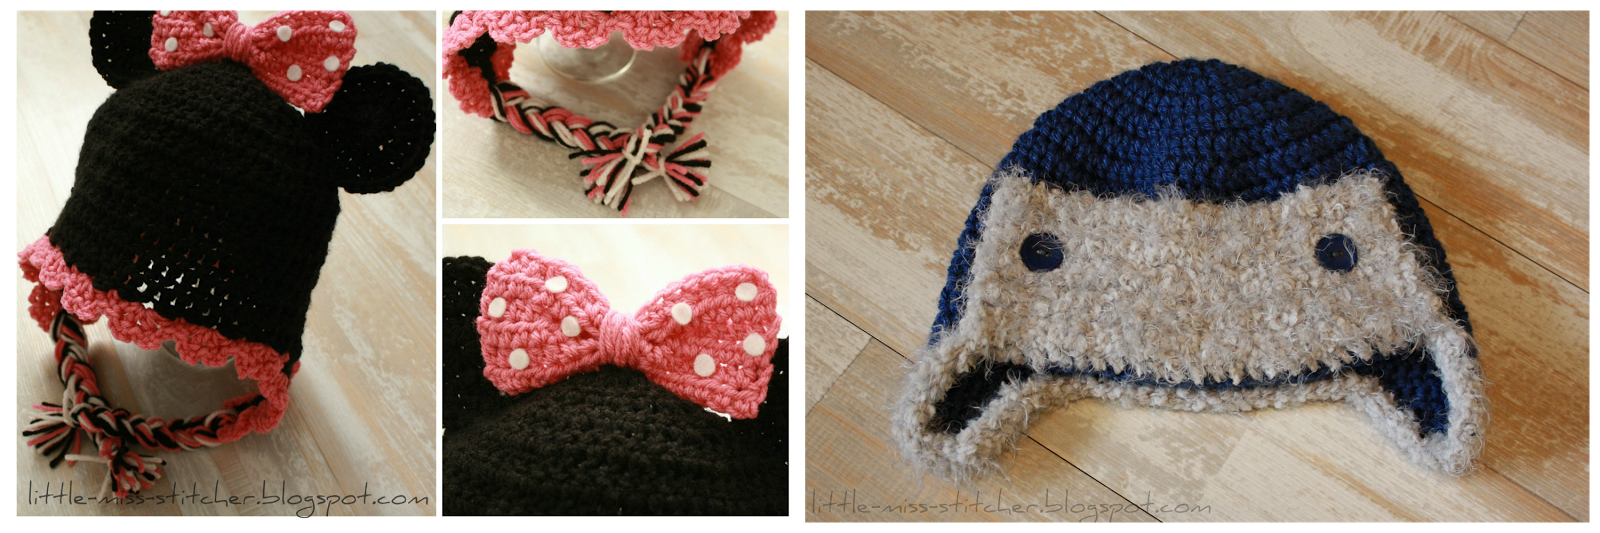 http://little-miss-stitcher.blogspot.com/p/crochet-for-kids.html